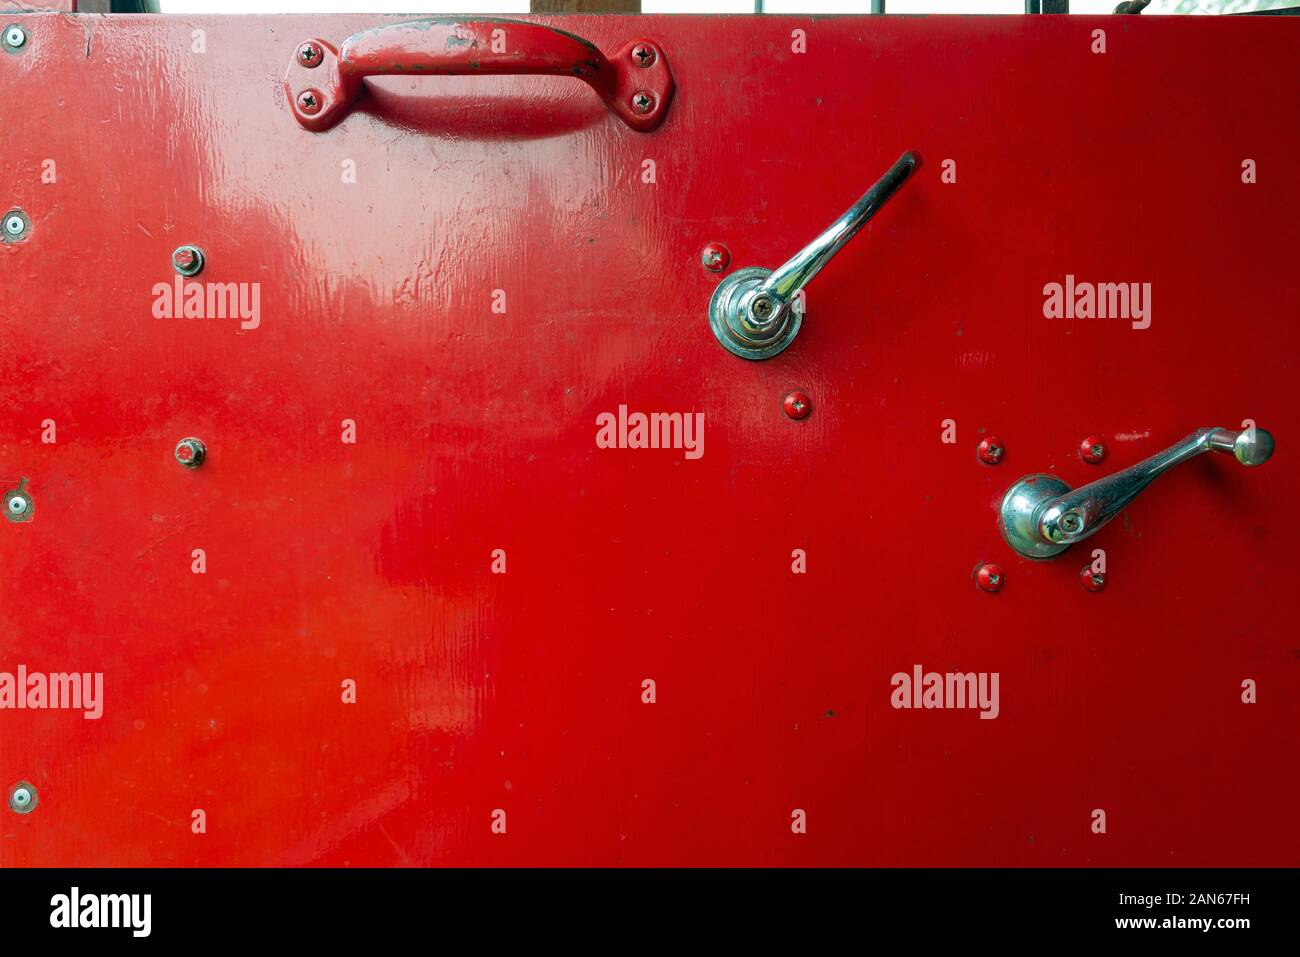 A Red Metal Door of an Old Fire Truck with Window Crank and Handles Stock Photo